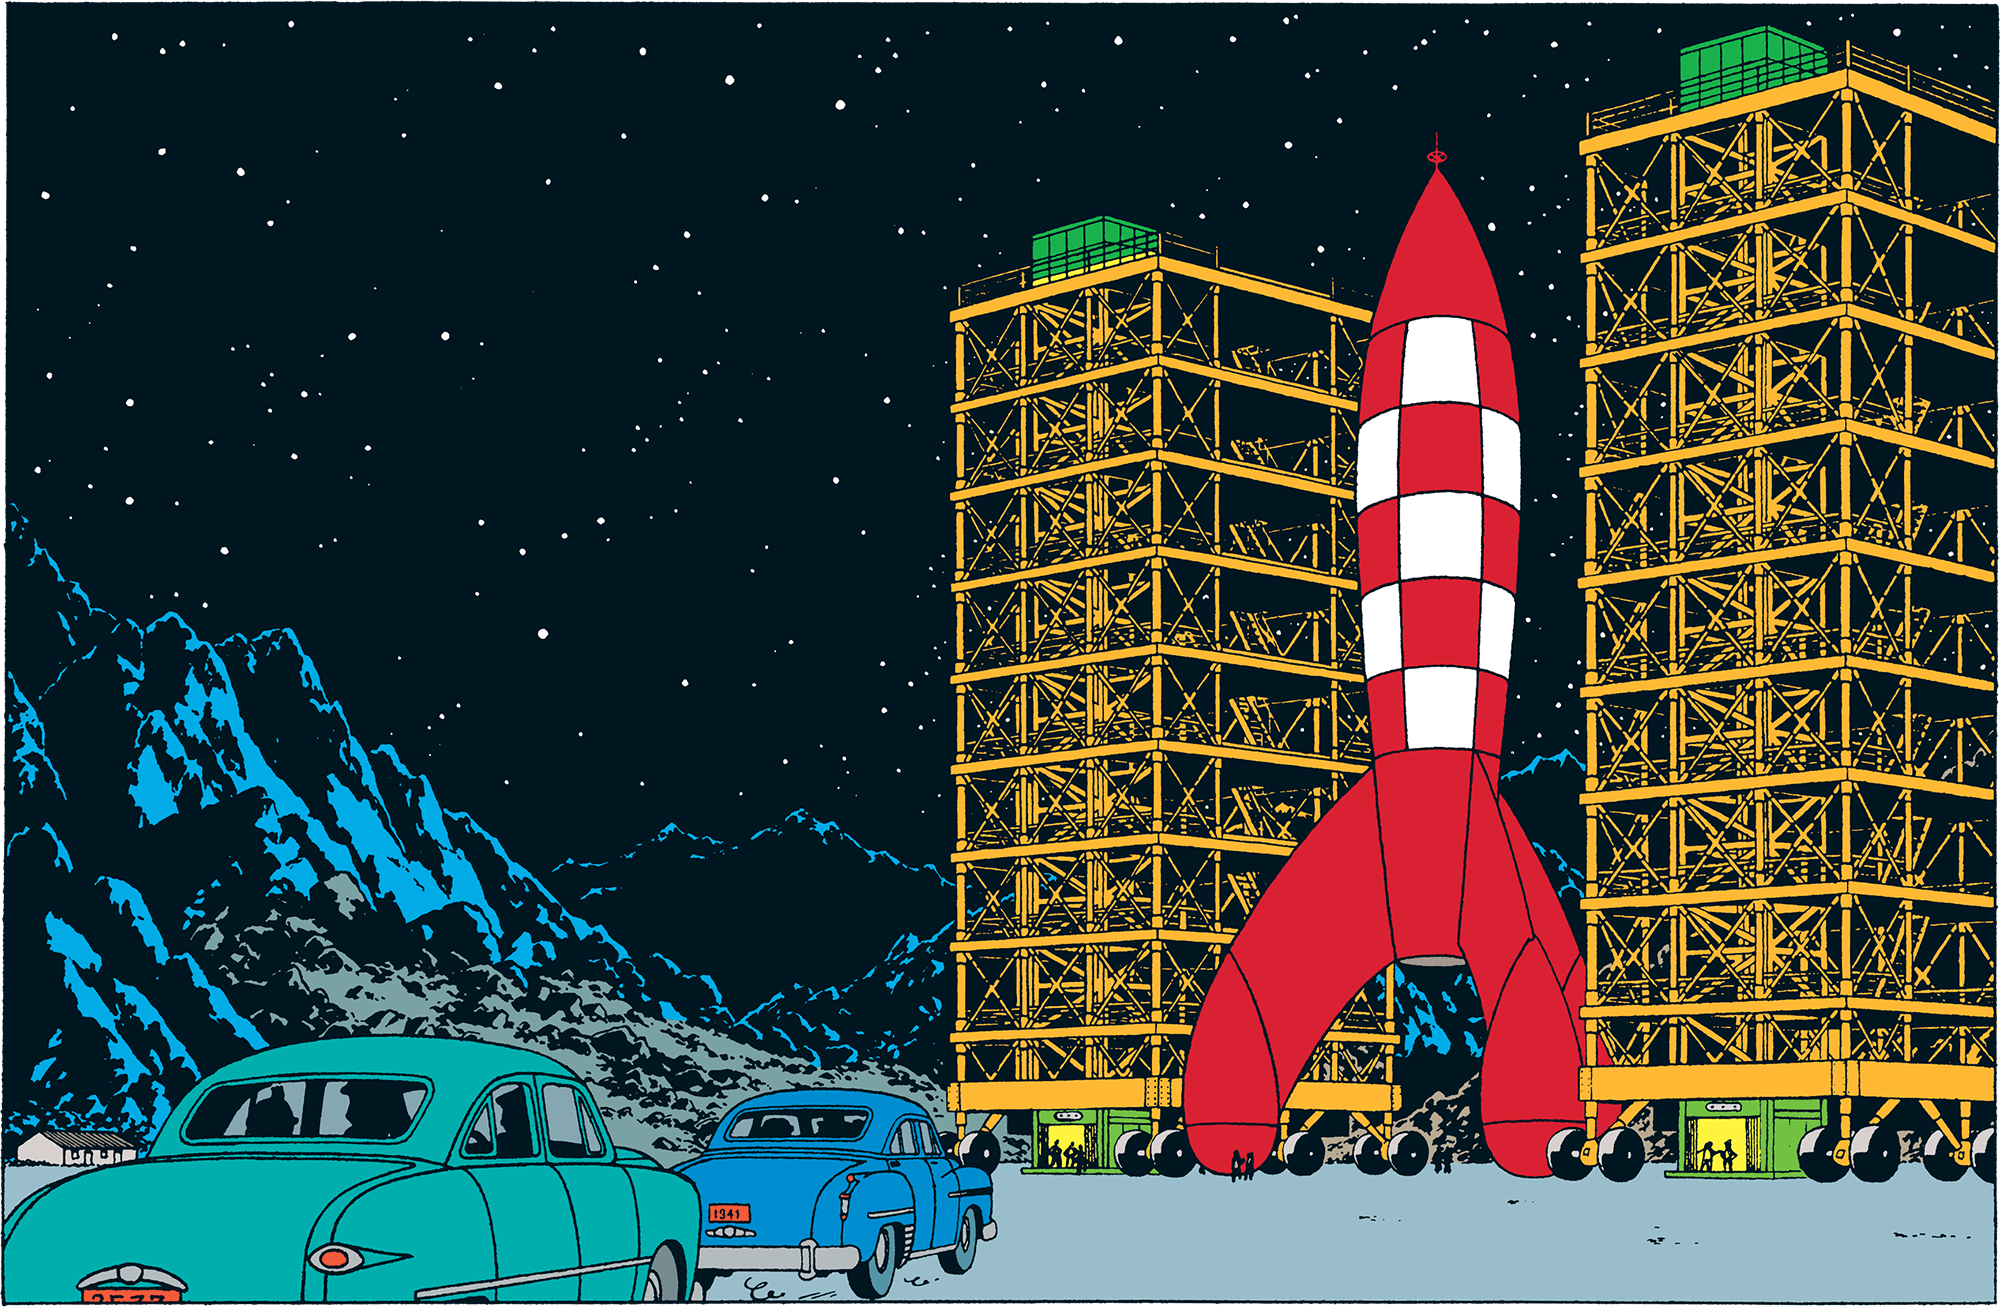 Tintin - The Adventures of Tintin - Destination Moon - The rocket